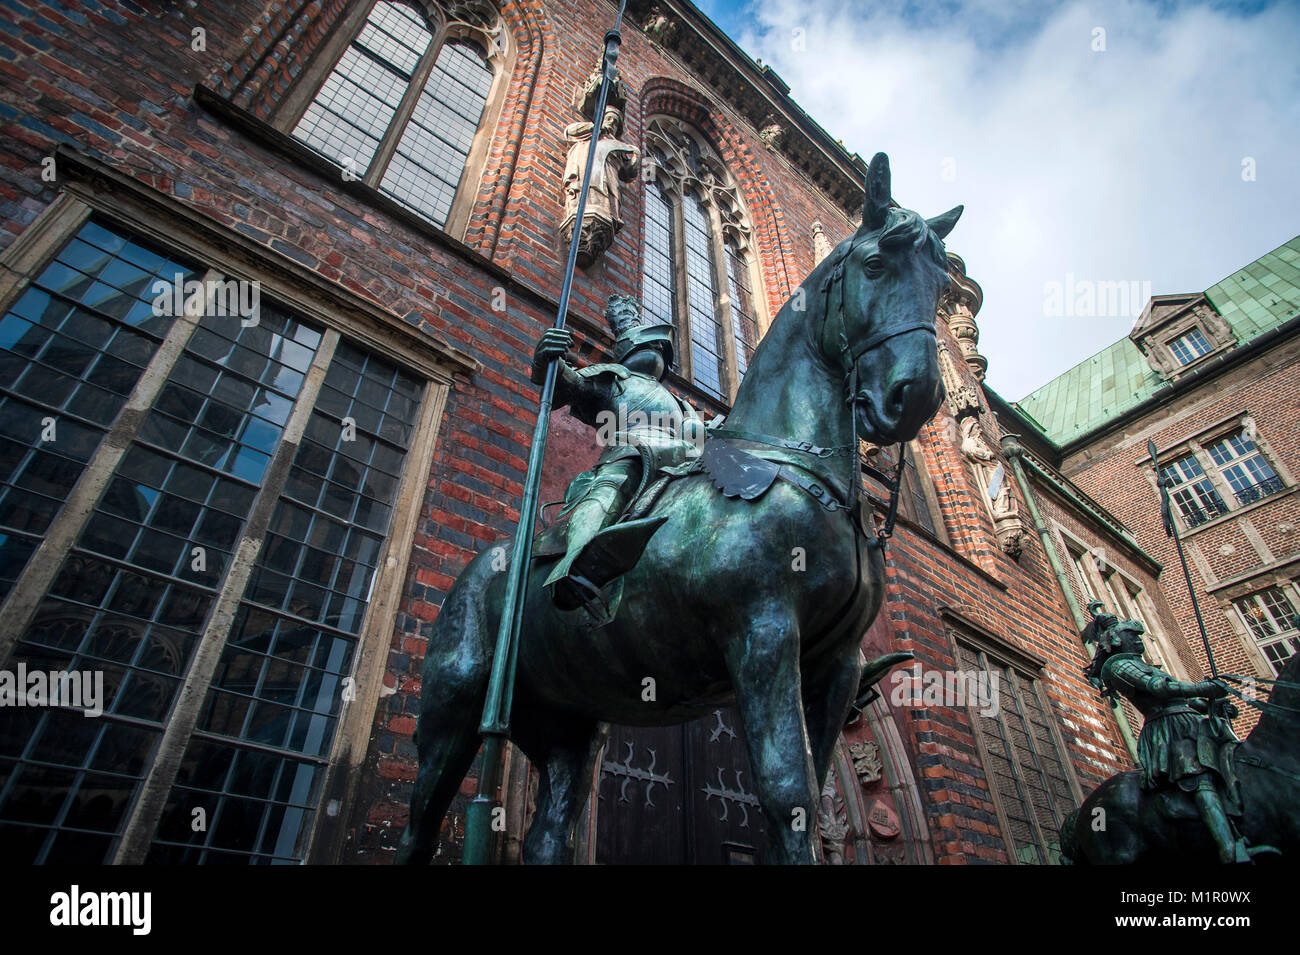 Bremen's first town Hall, Bremen, Germany. - Stock Image